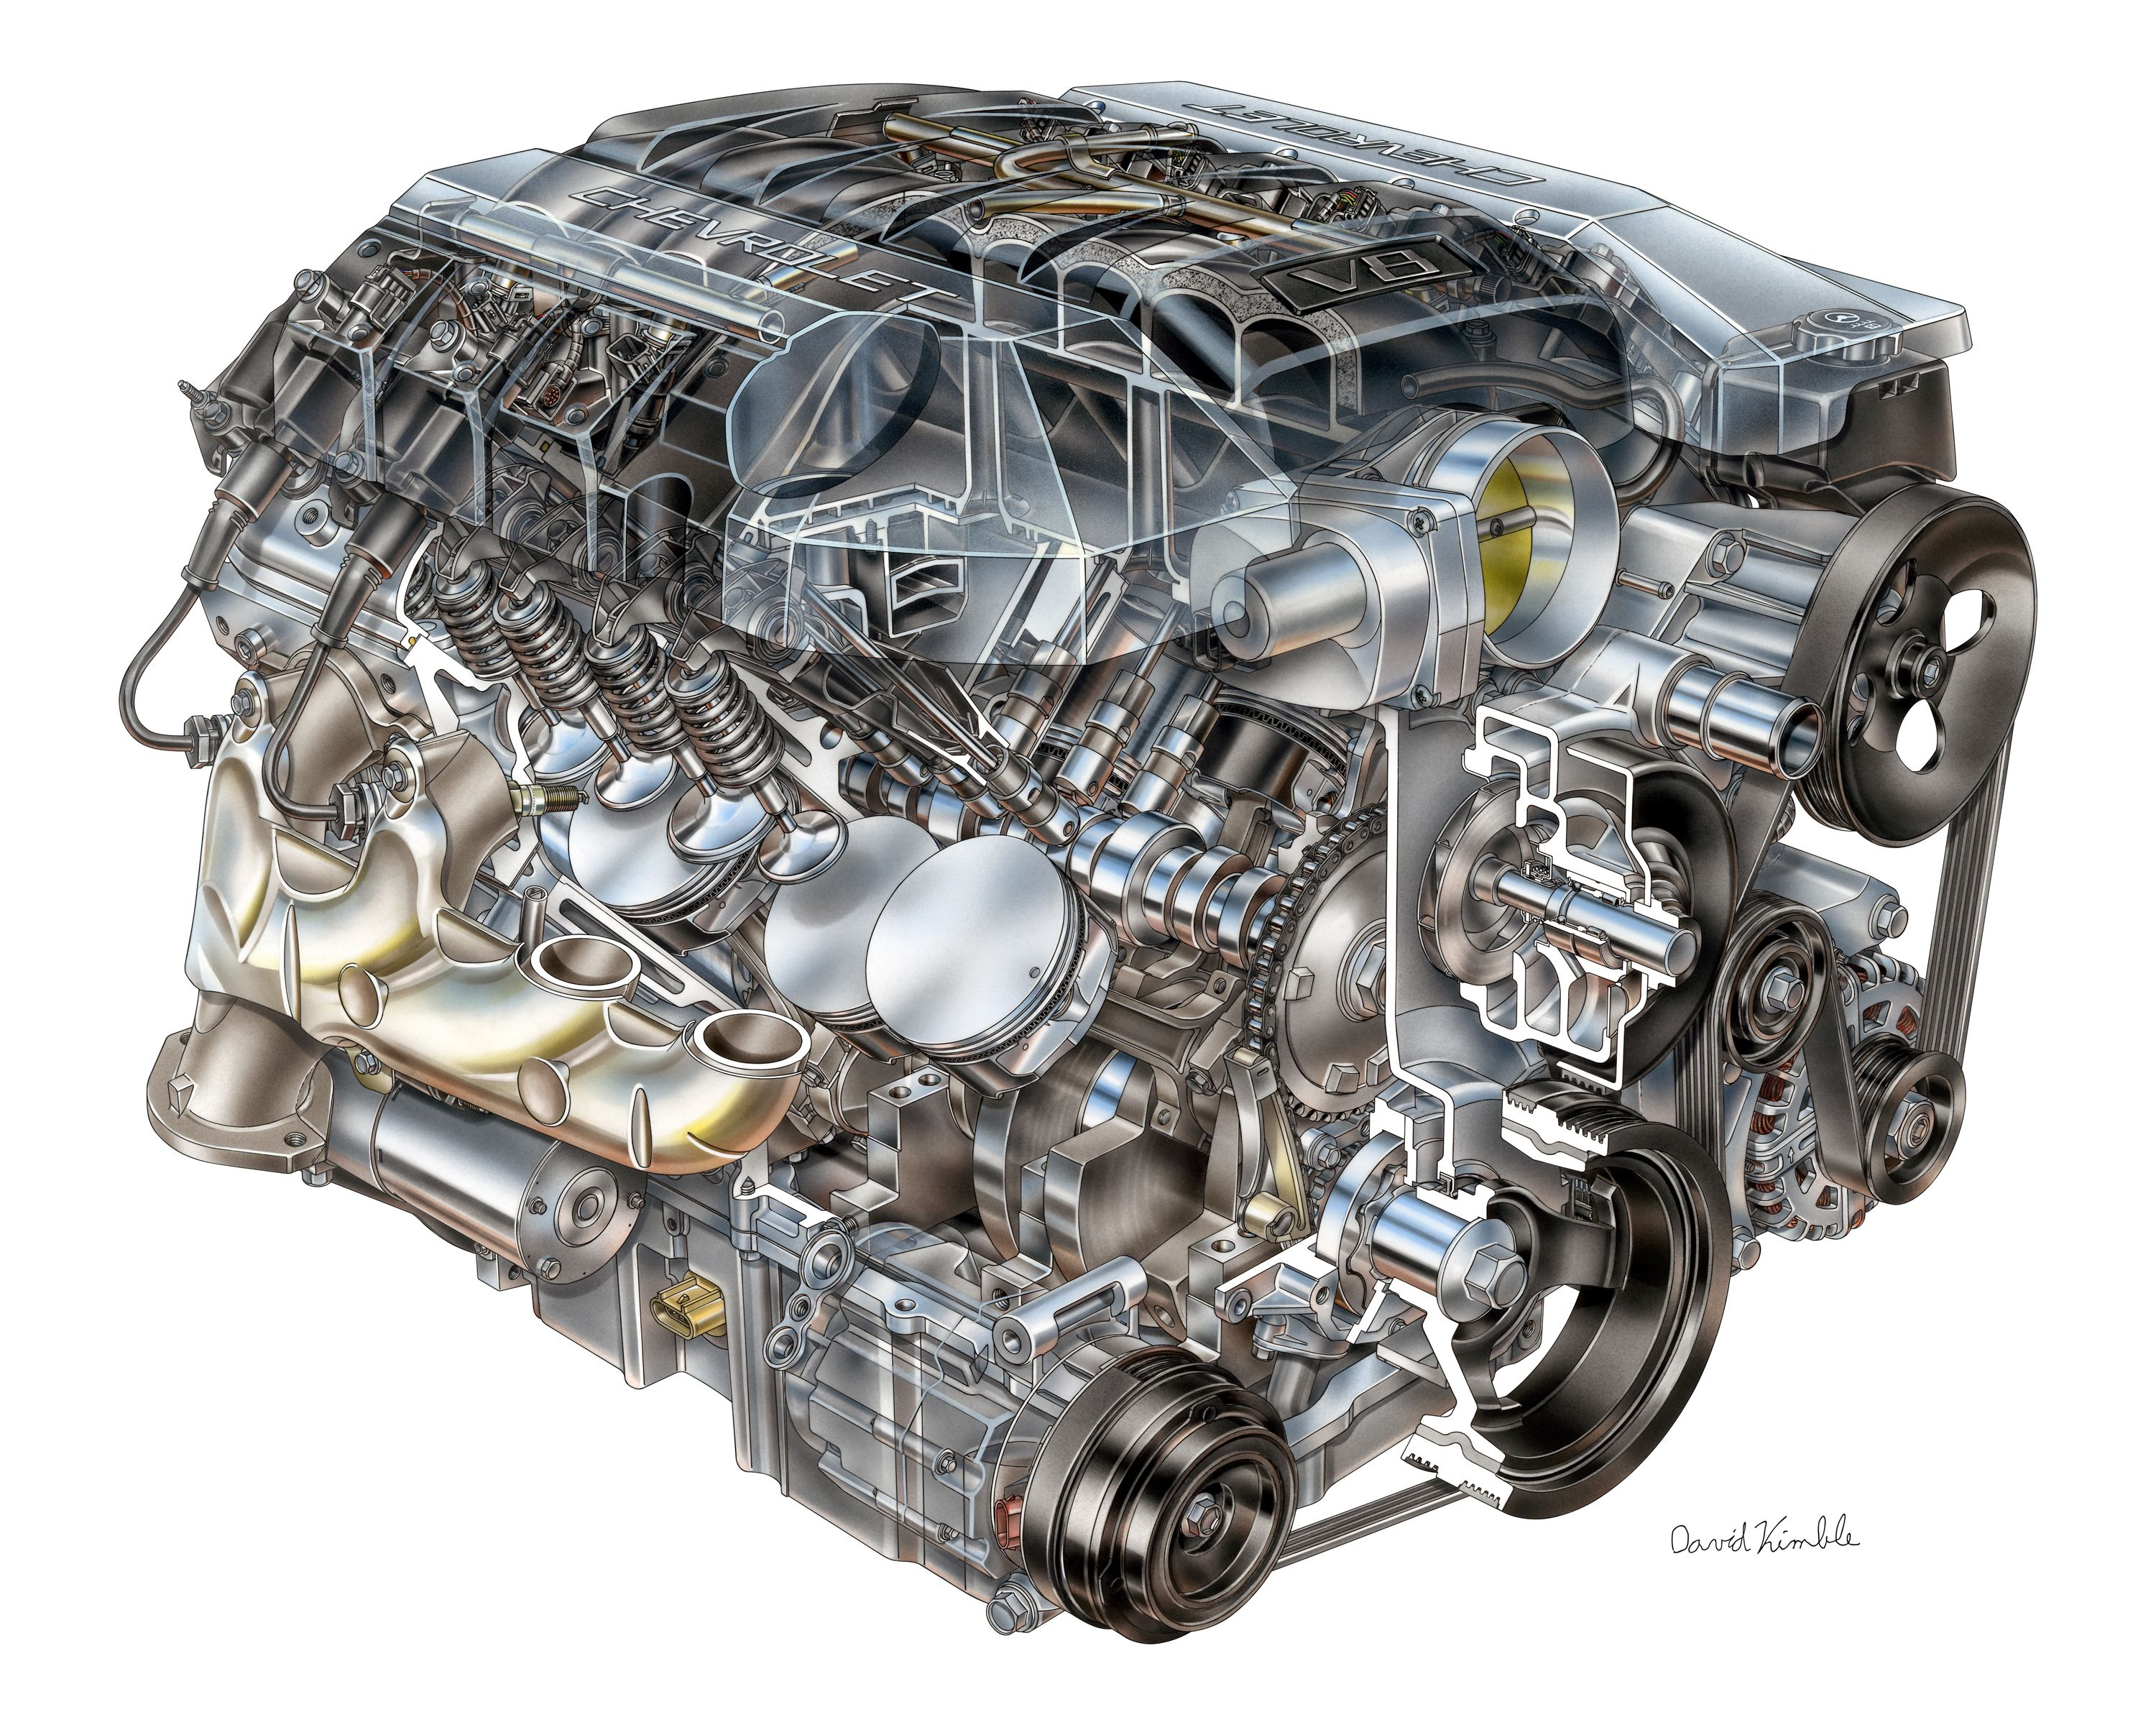 medium resolution of what chevy gains by using a pushrod engine in the corvette corvette v8 engine diagram